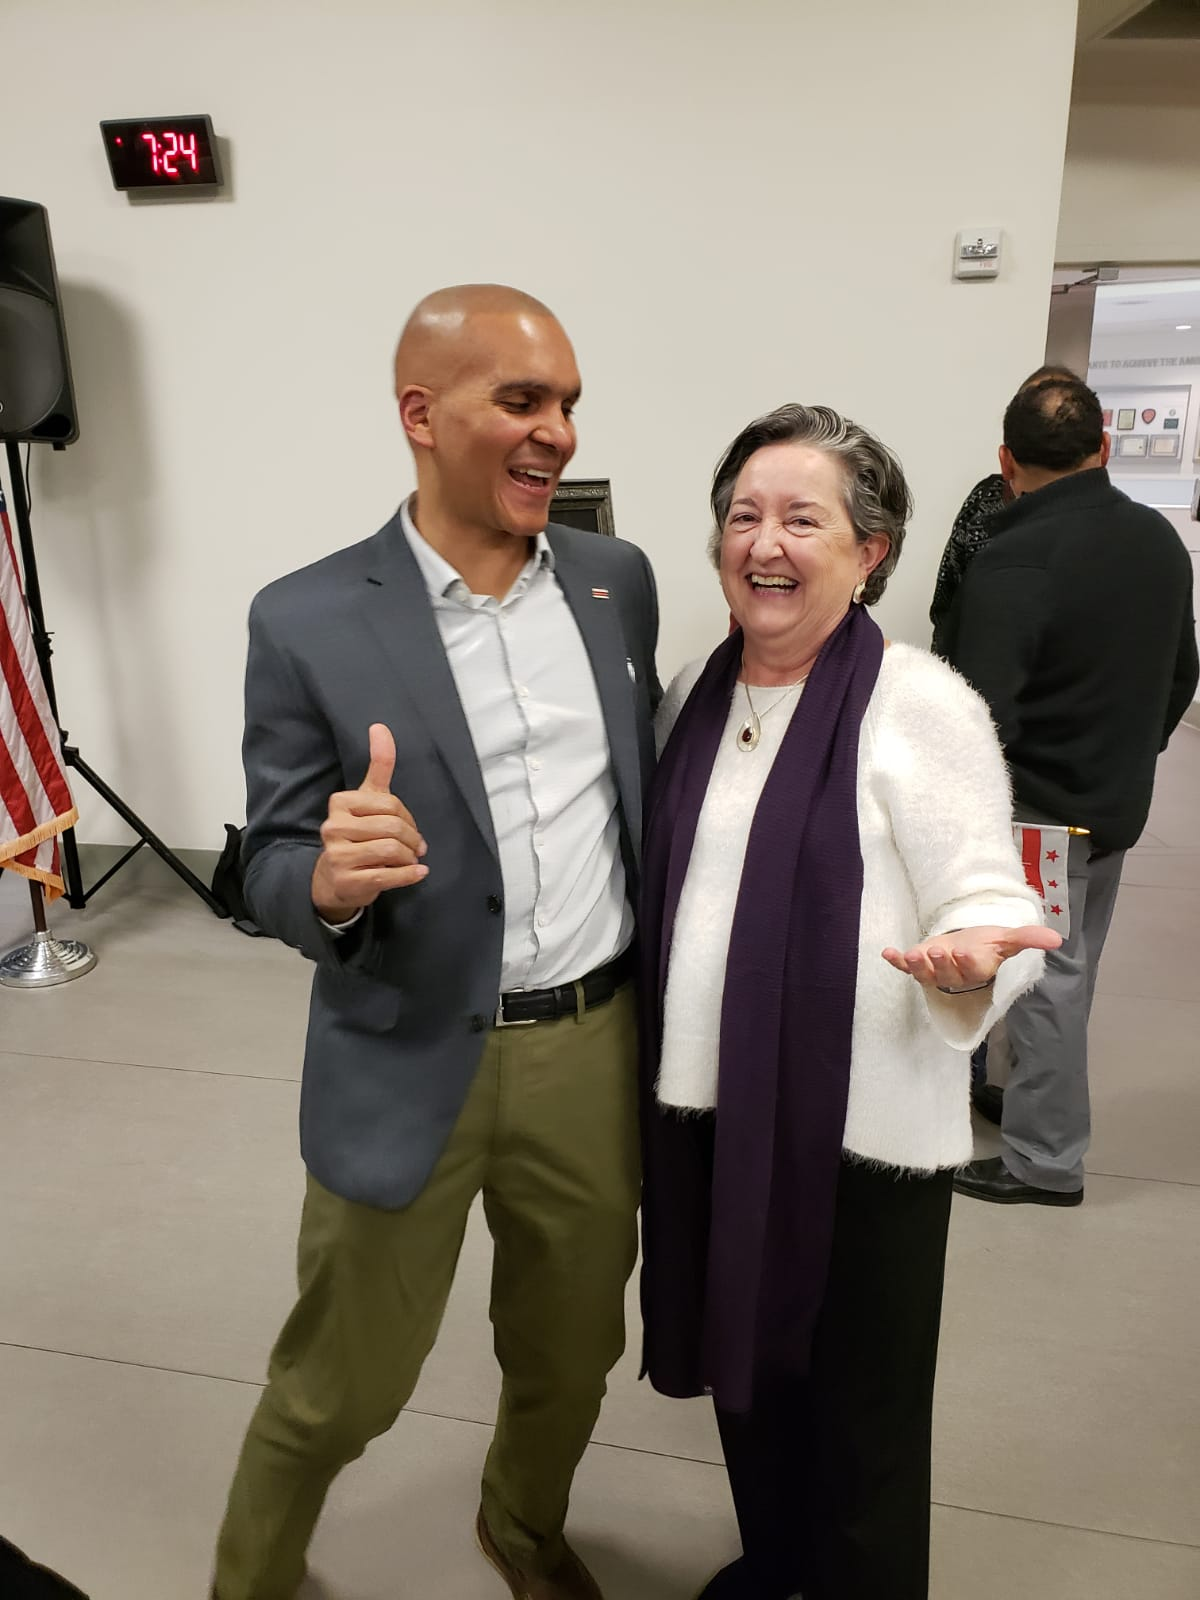 Franklin Garcia poses with Bibi Otero long time Latino community leader at the December 14th reception celebrating the life of Pepe Lujan.